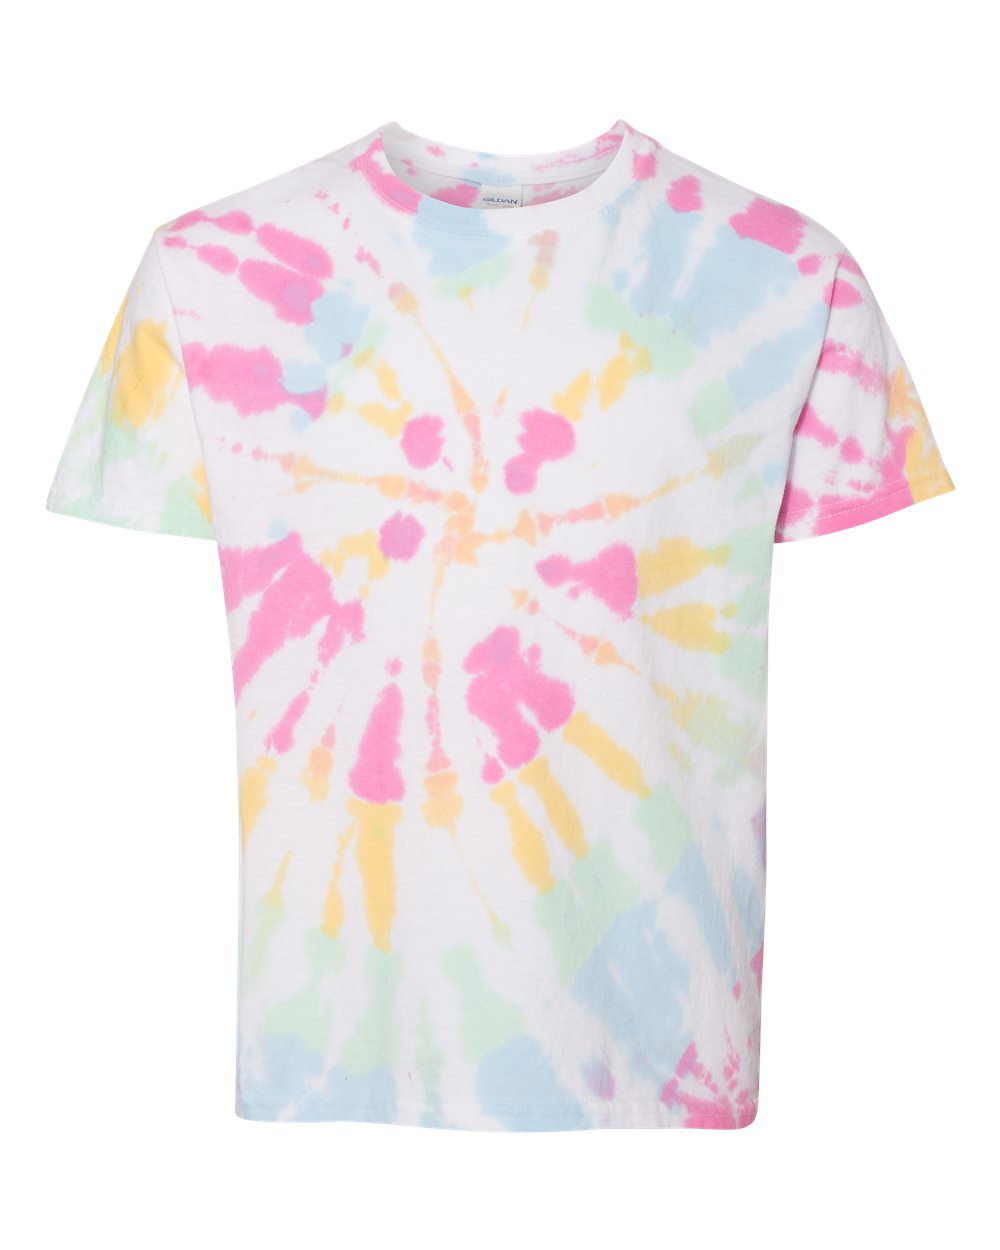 Dyenomite 20BSC - Youth Summer Camp Tie Dye Tee